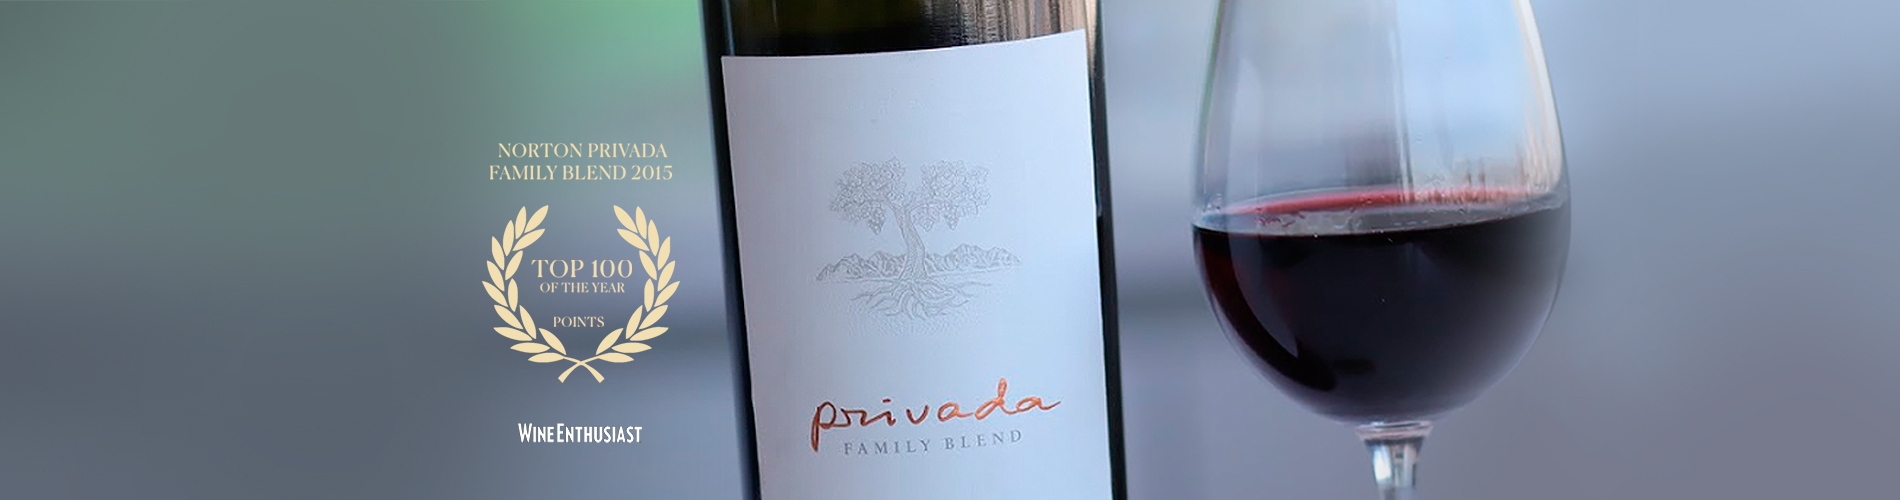 One more time, Privada Family Blend 2015 was awarded with excellent scores